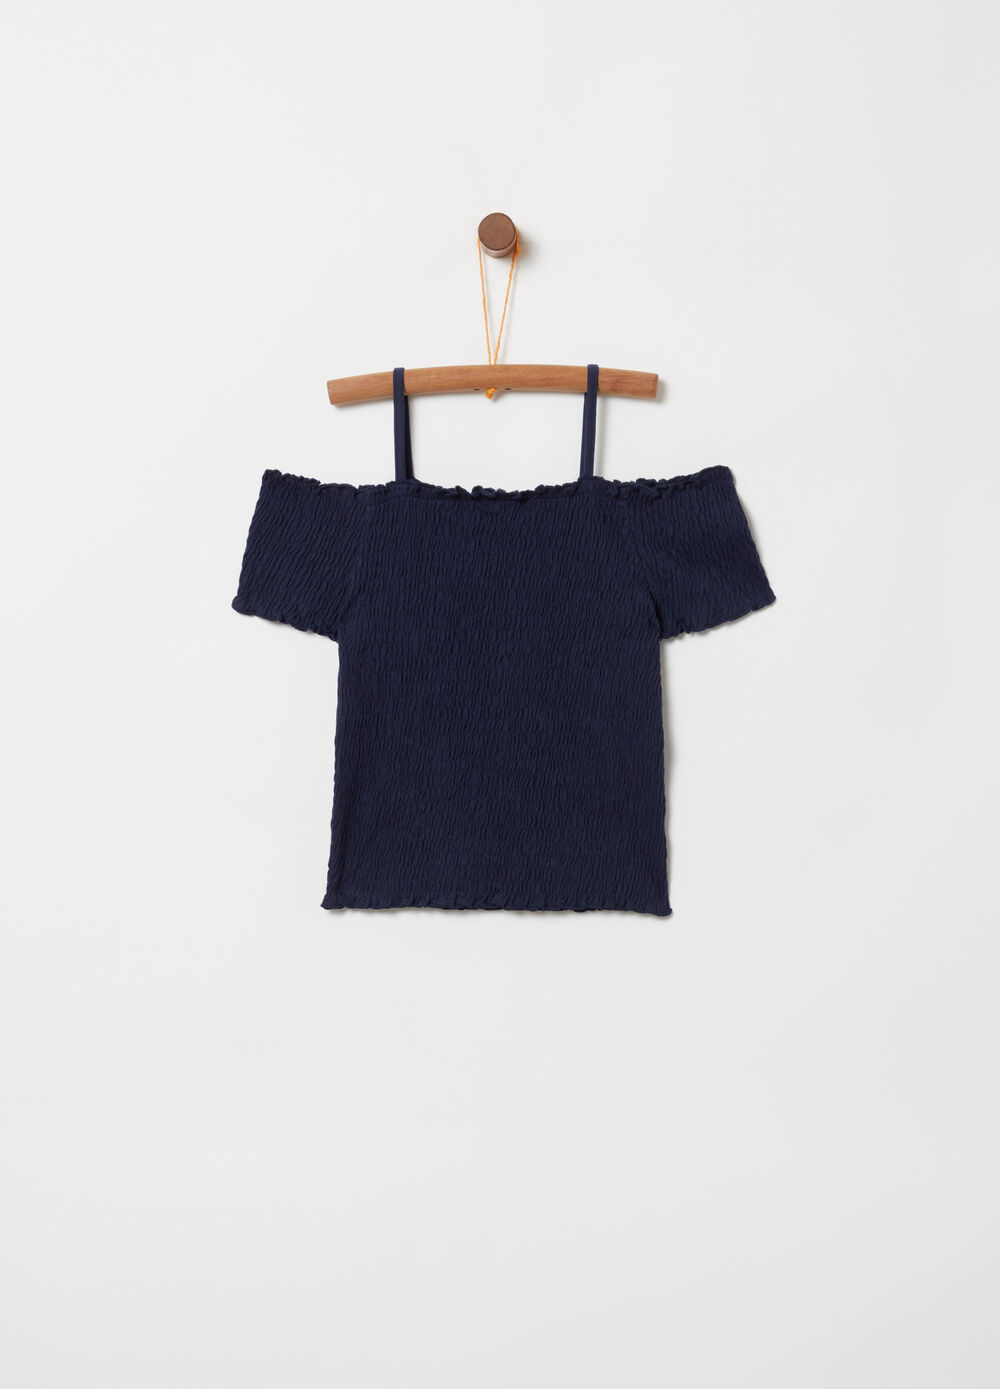 Smock stitch tank top with spaghetti straps